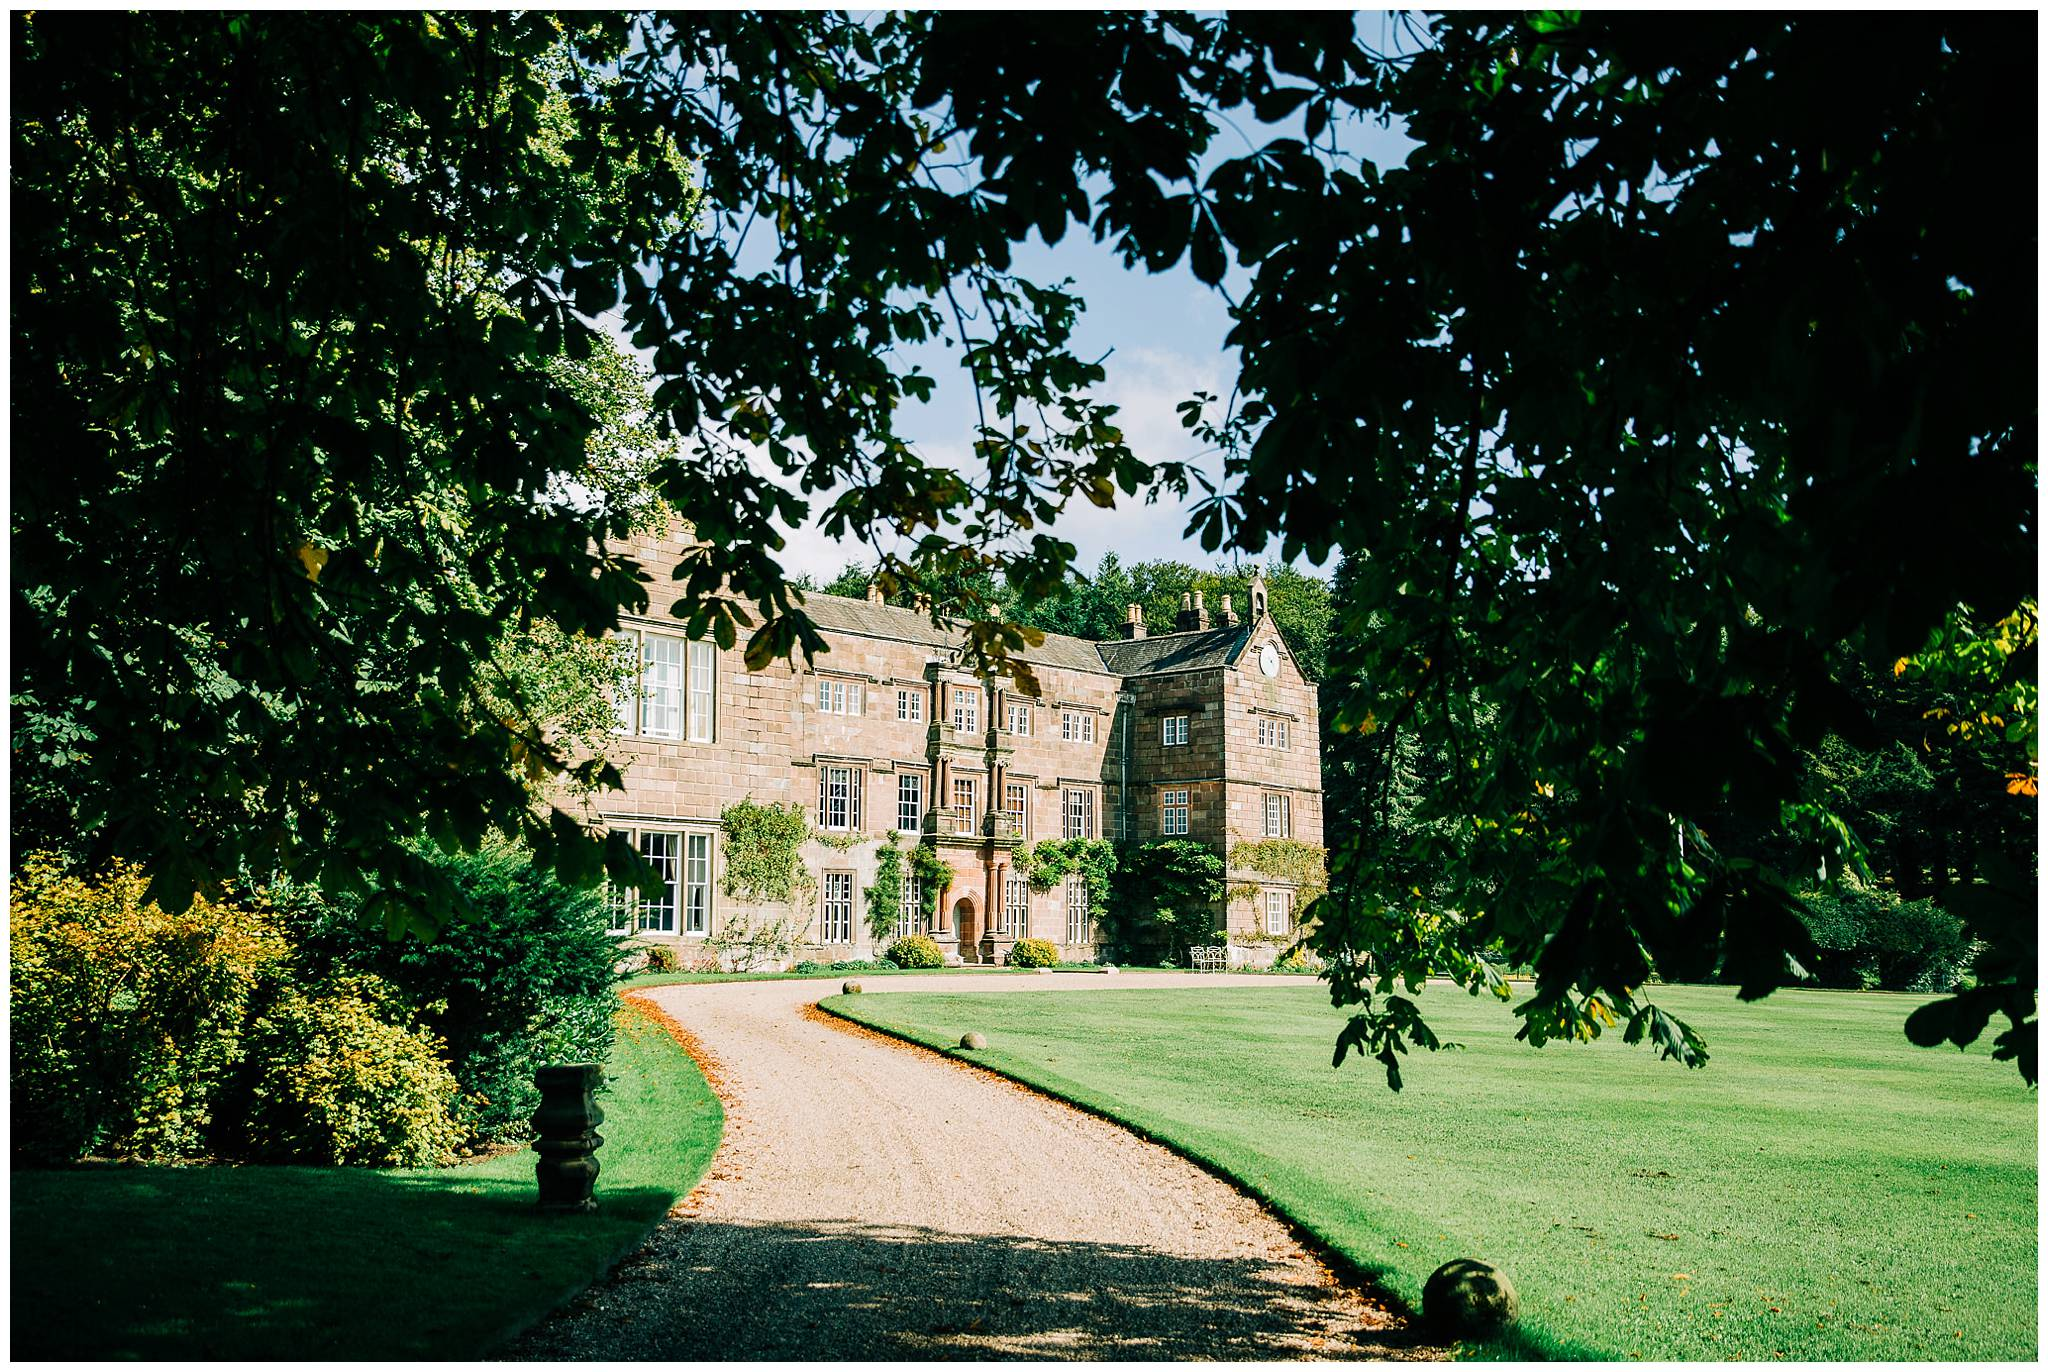 A shaded leafy canopy is framing Browsholme hall which is in the sunny background